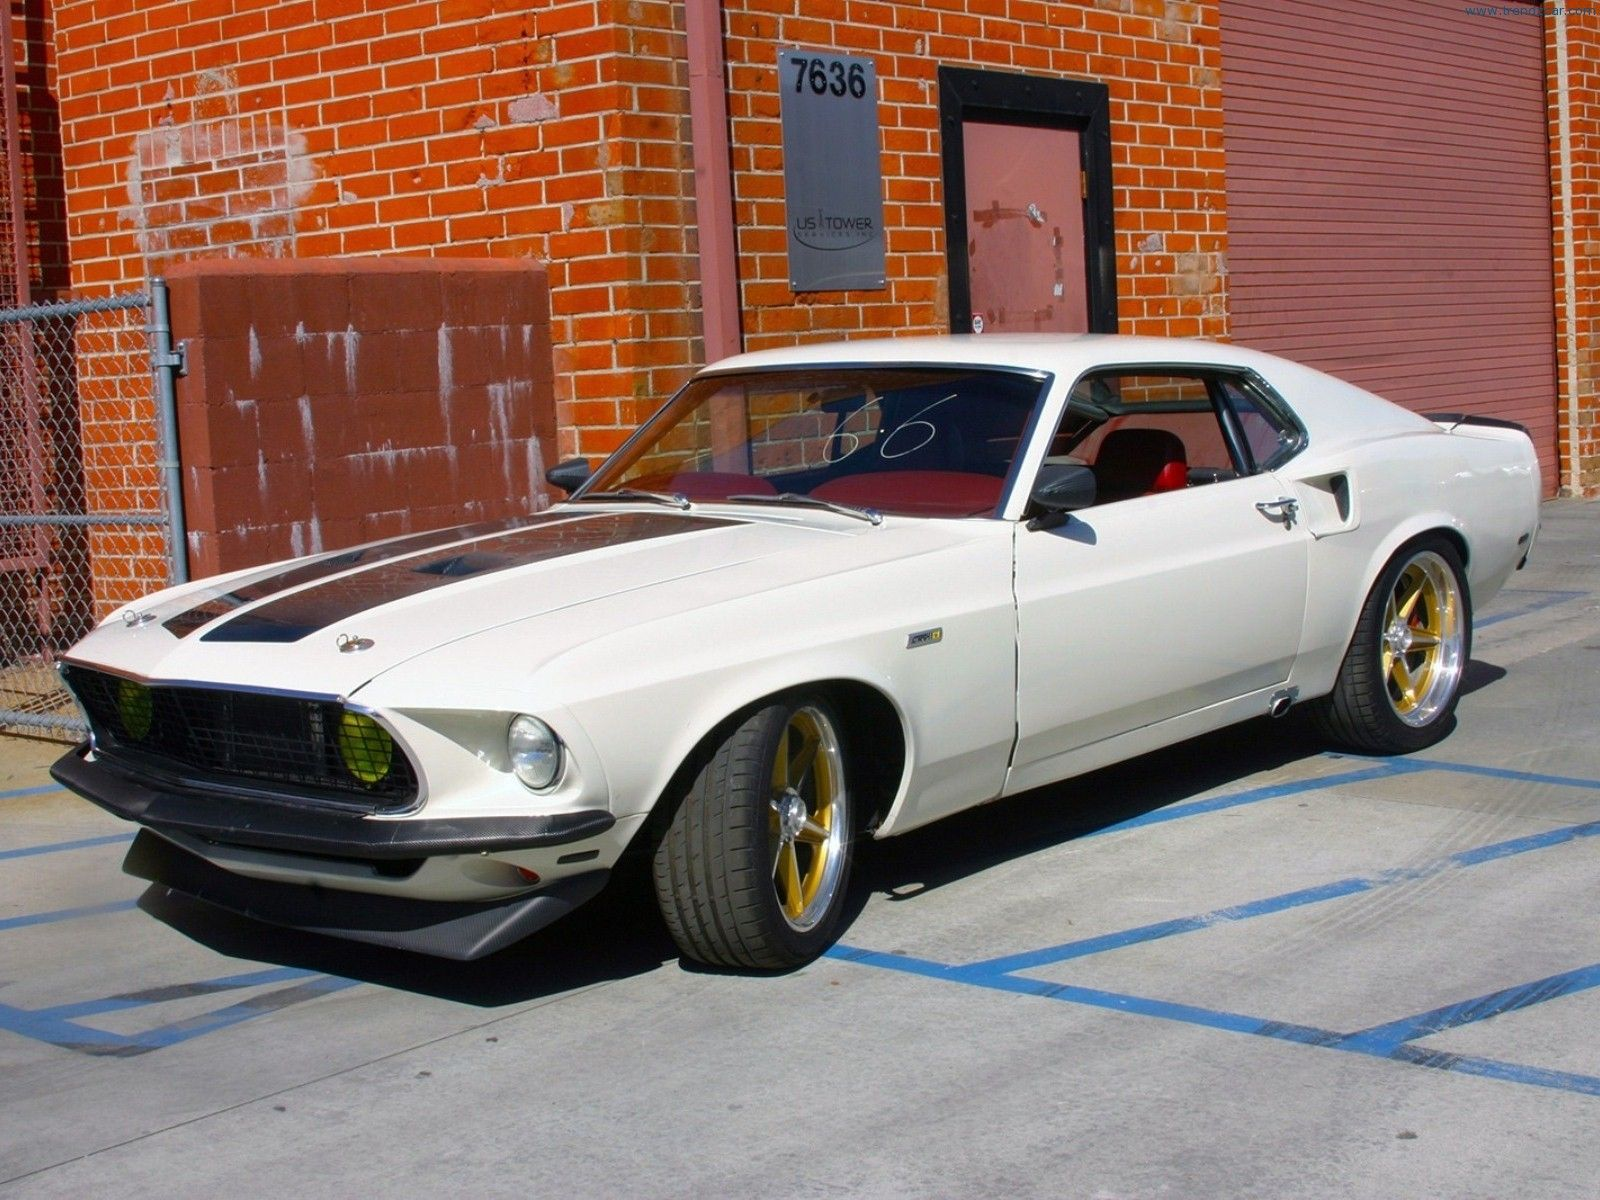 1969 Ford Mustang Front Angle - Fast & Furious 6 Car | Fast and ...